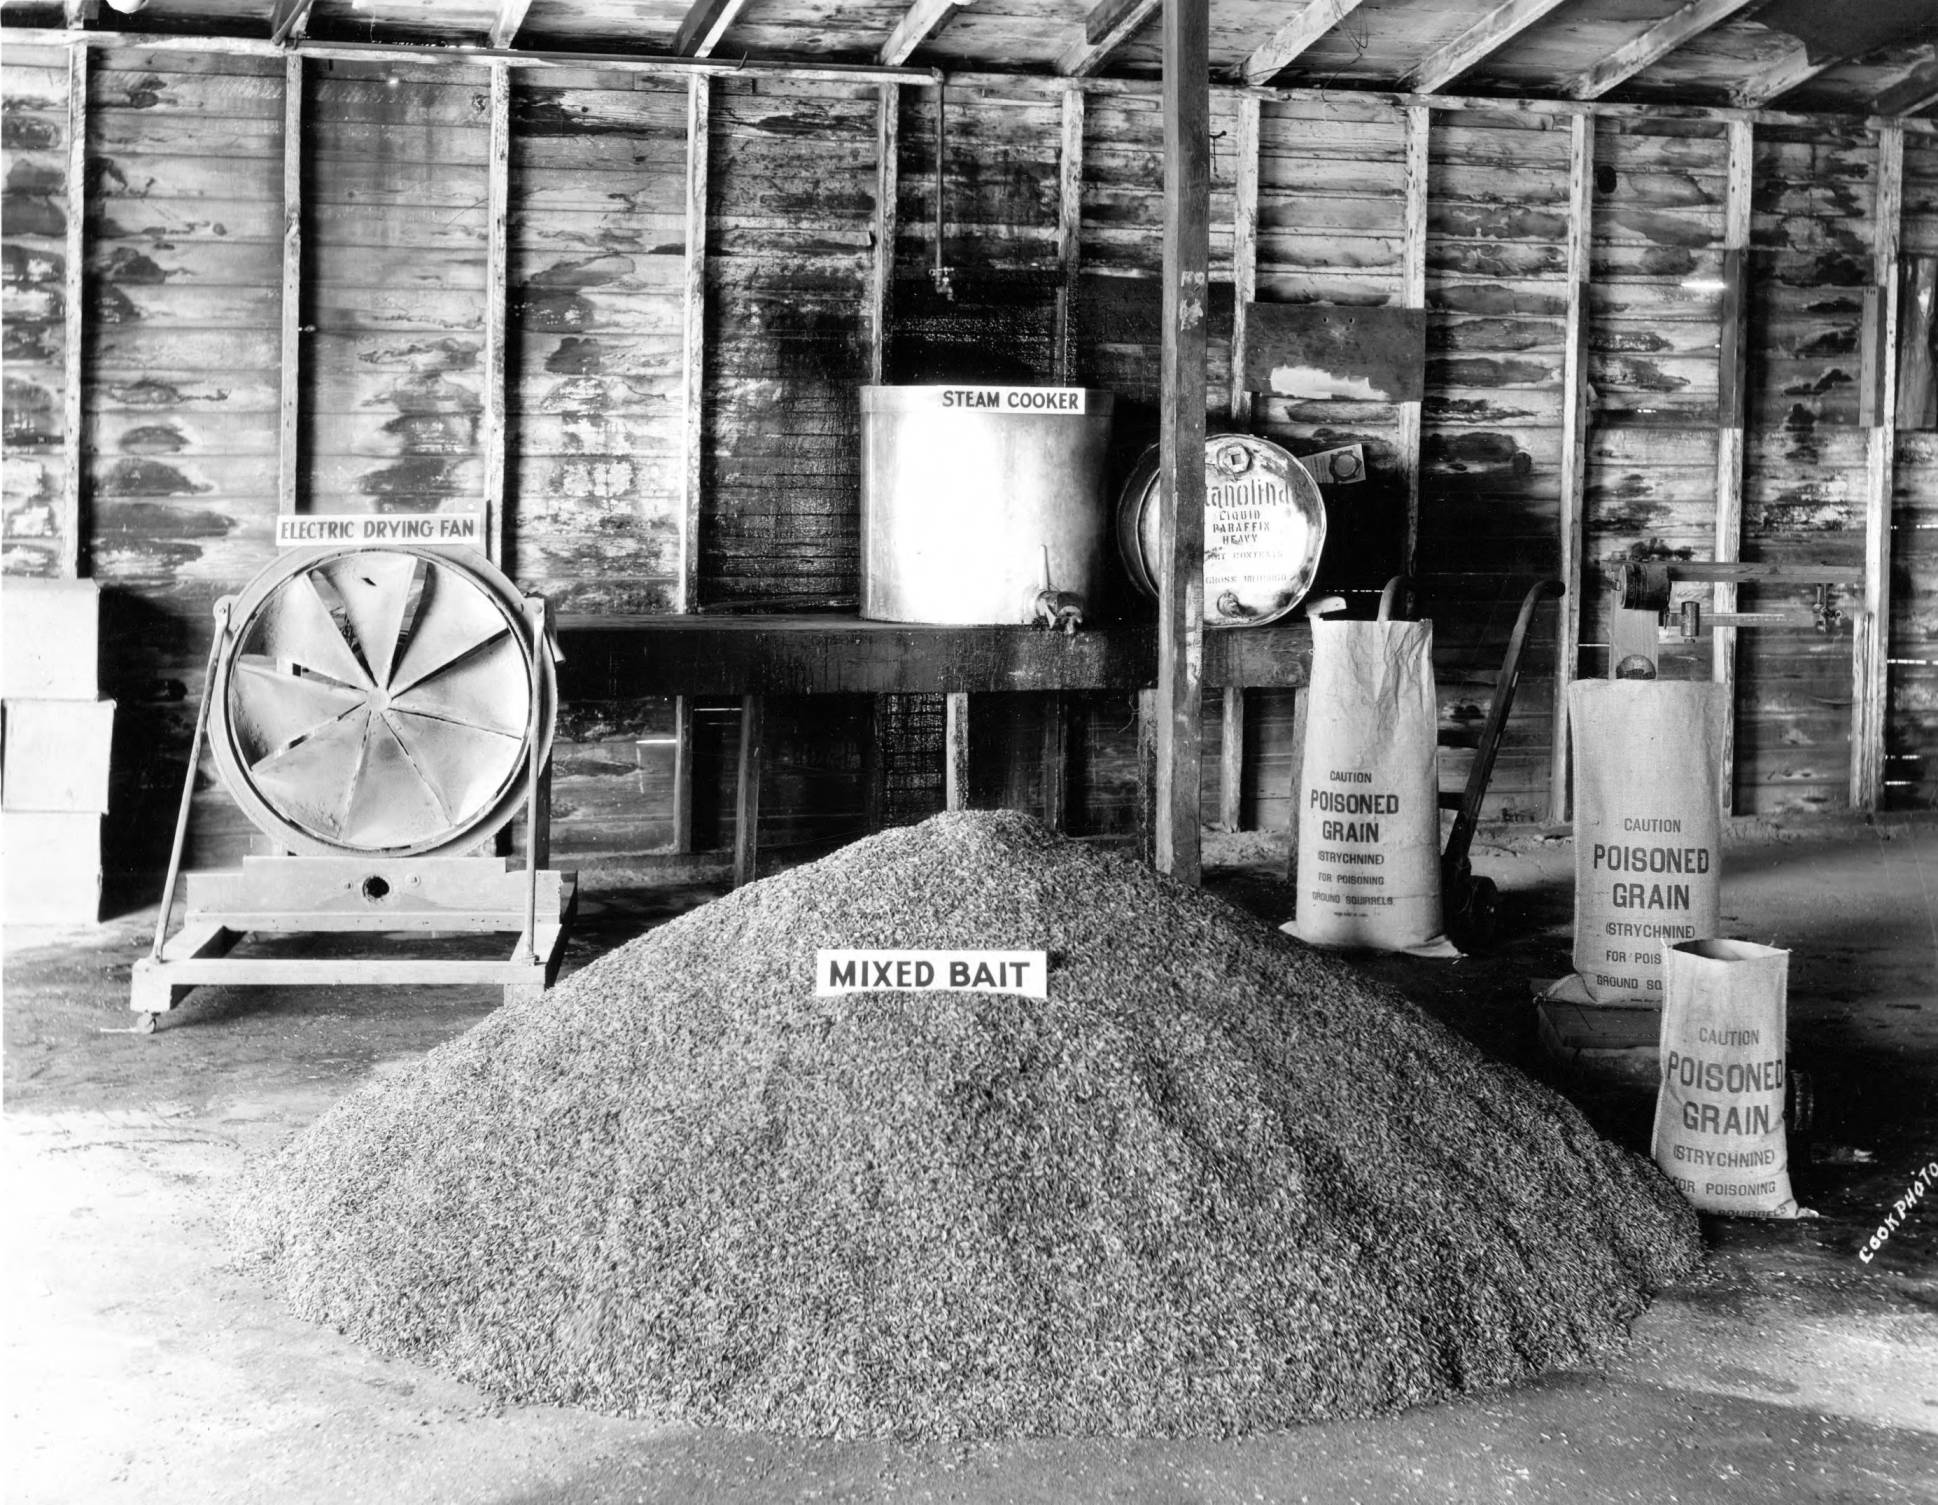 item thumbnail for USDA and University of Idaho mixing station, Equipment and materials